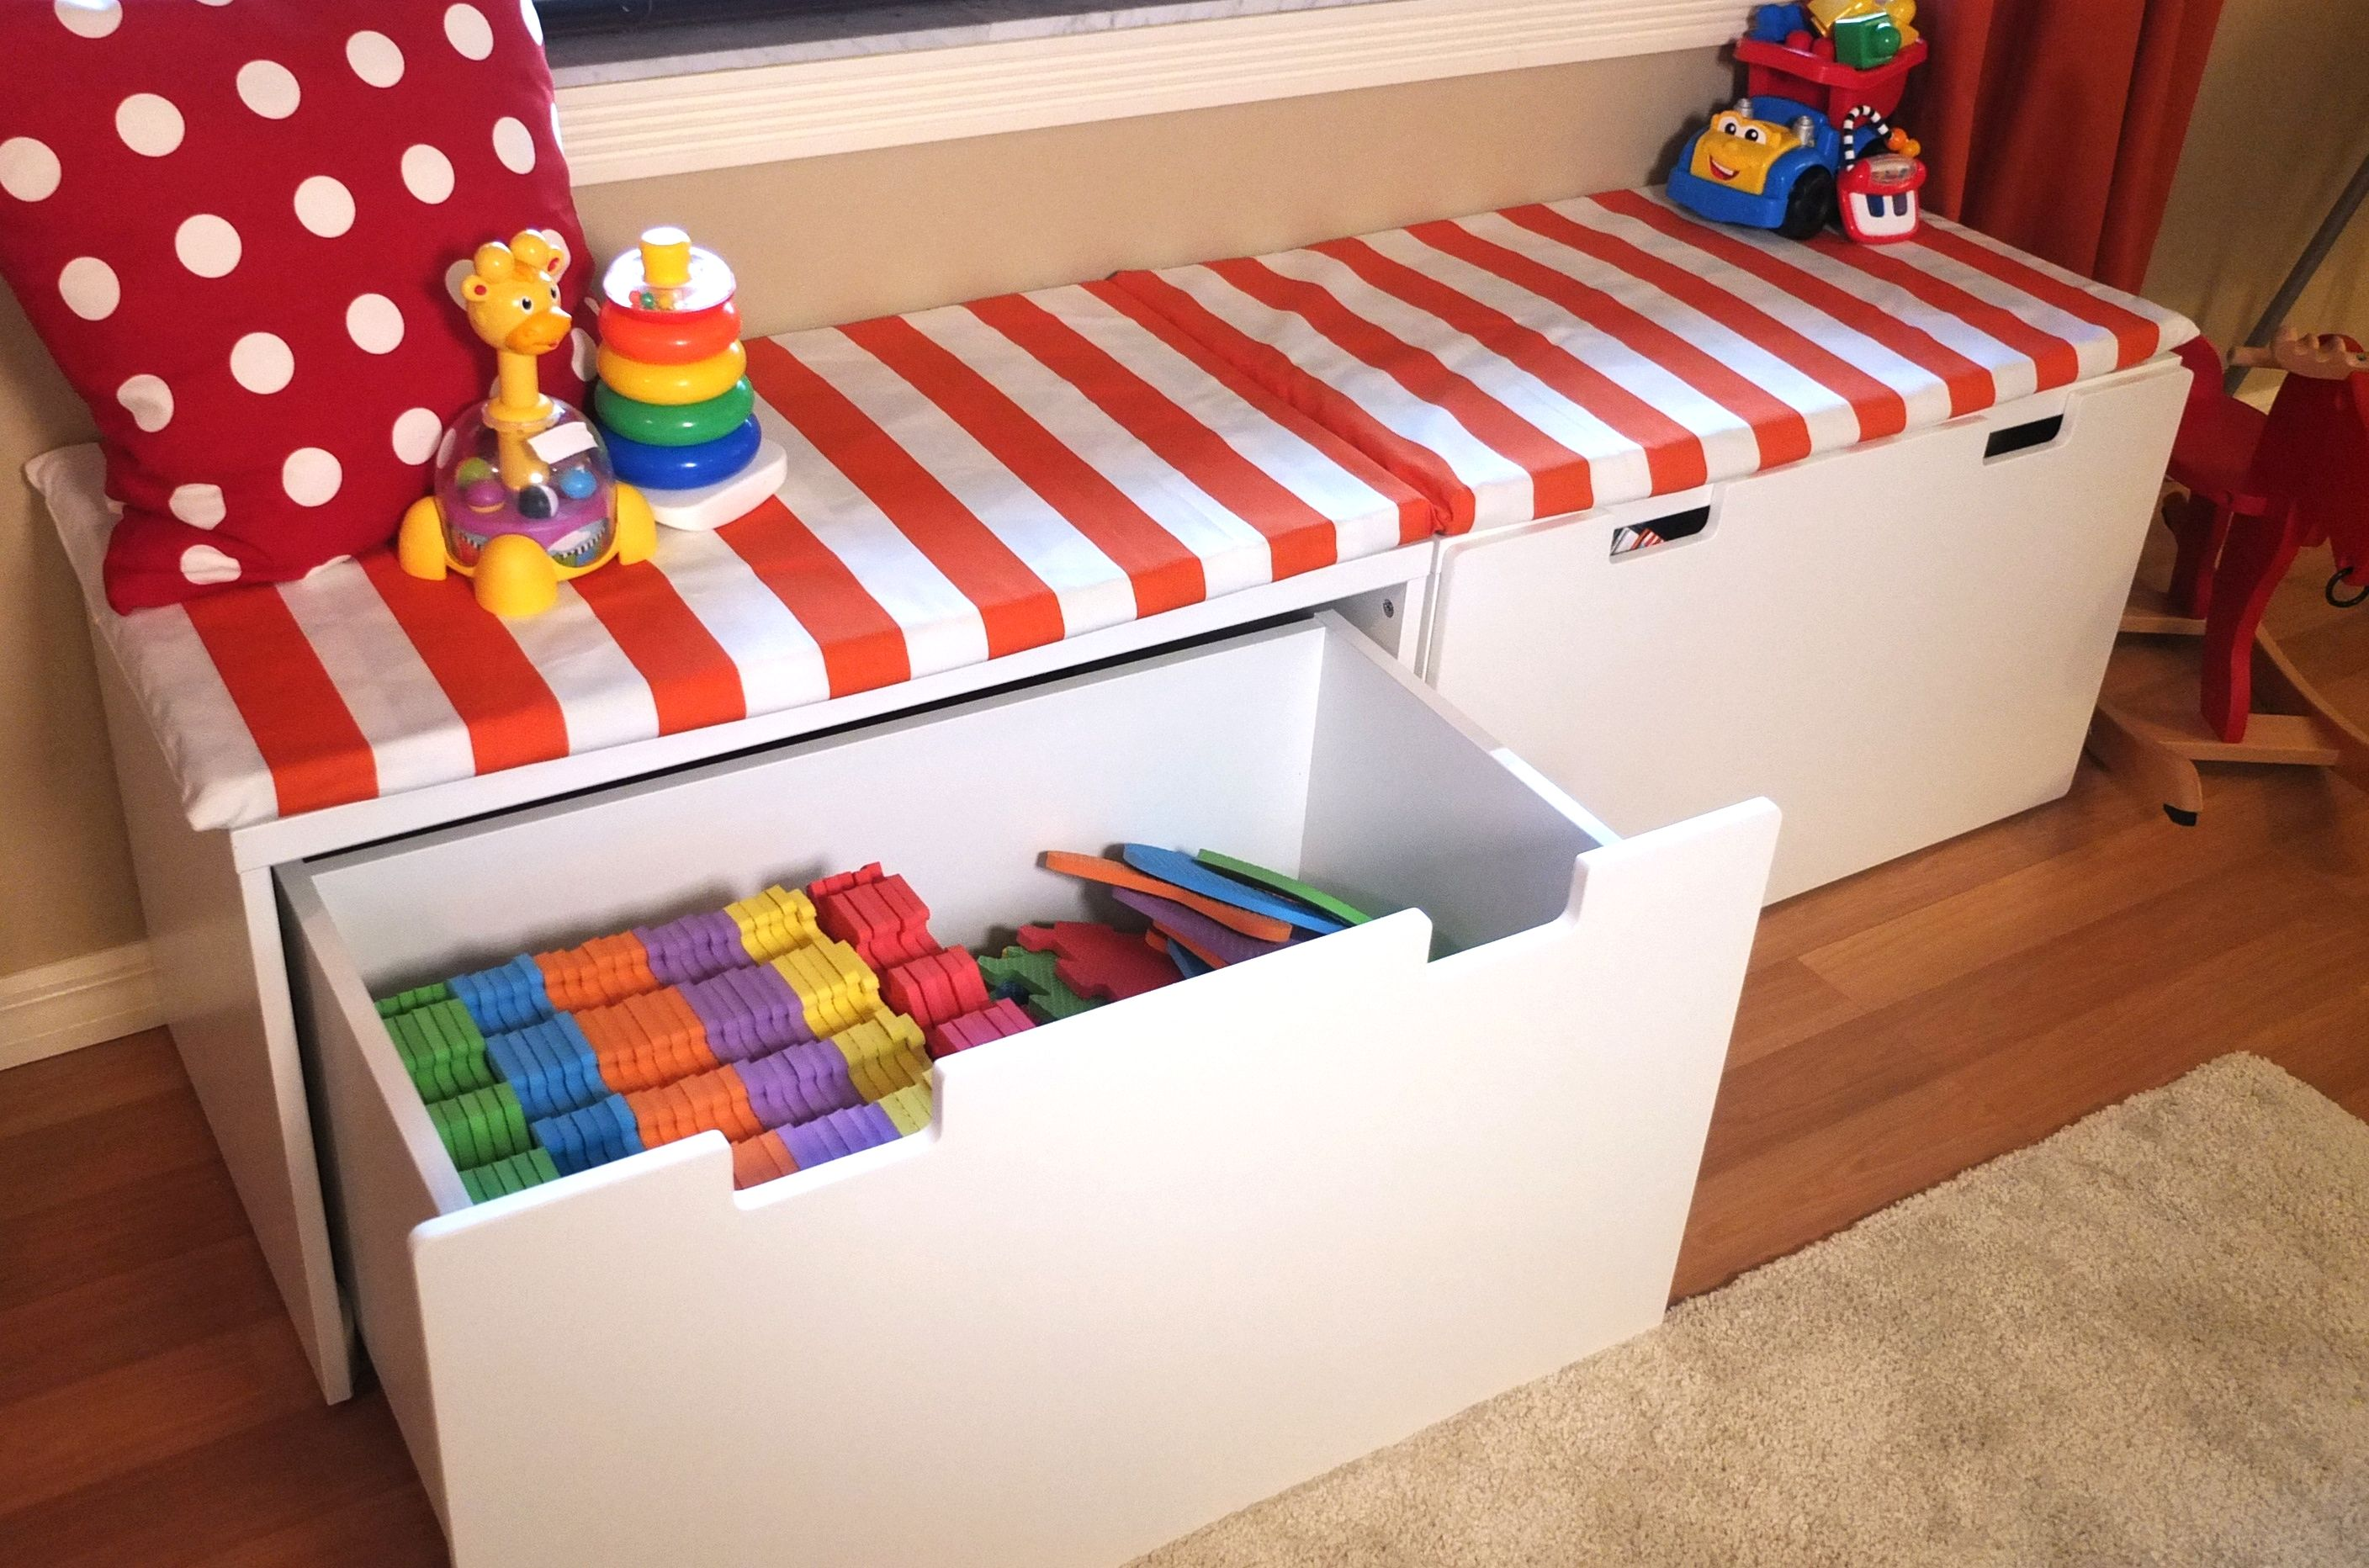 The Stuva Storage Bench Provides A Comfortable Window Seat While Also Providing Toy Storage